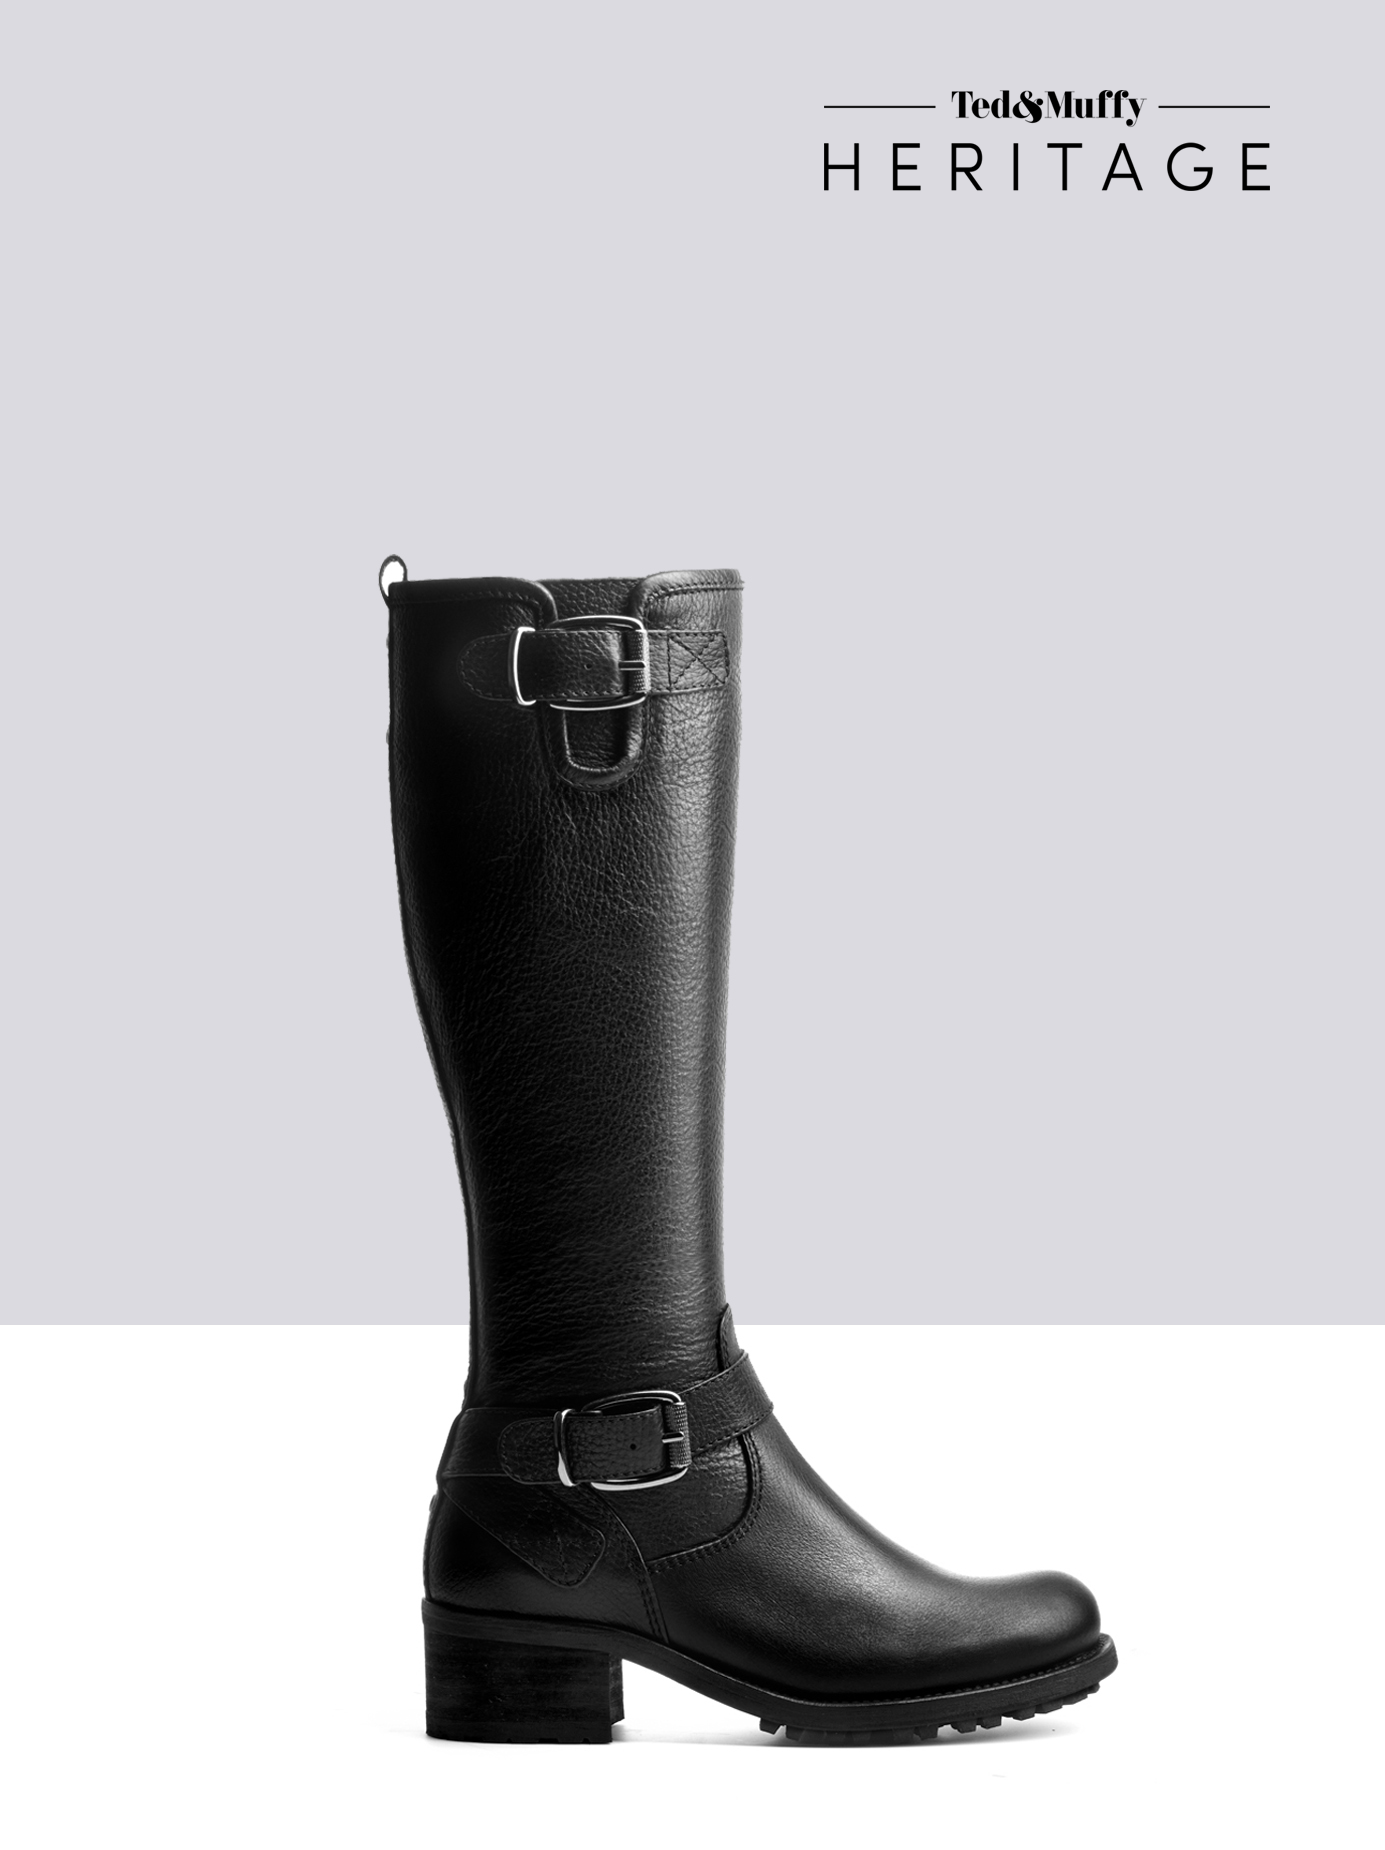 f87205554072a Demeter - Knee High Boots in Black Leather by Ted Muffy US   Shoes ...